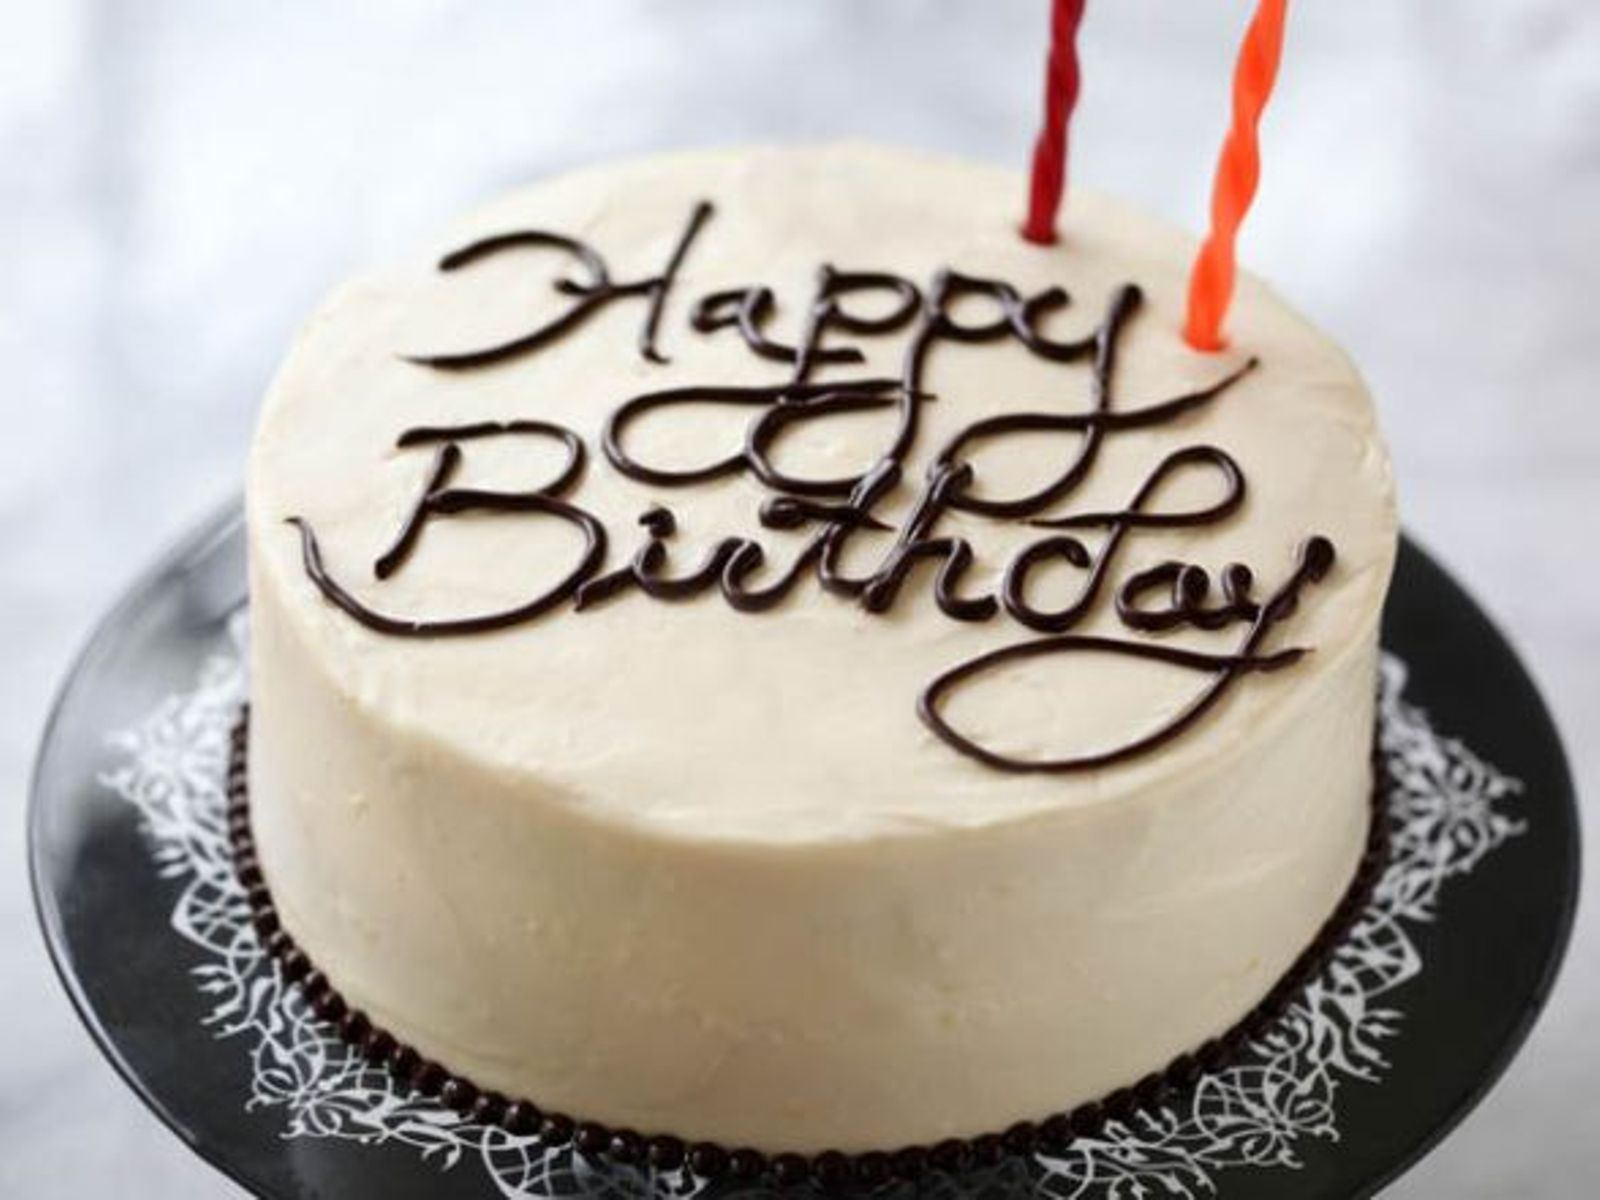 Ordering Birthday Cakes In Nyc The Complete Guide